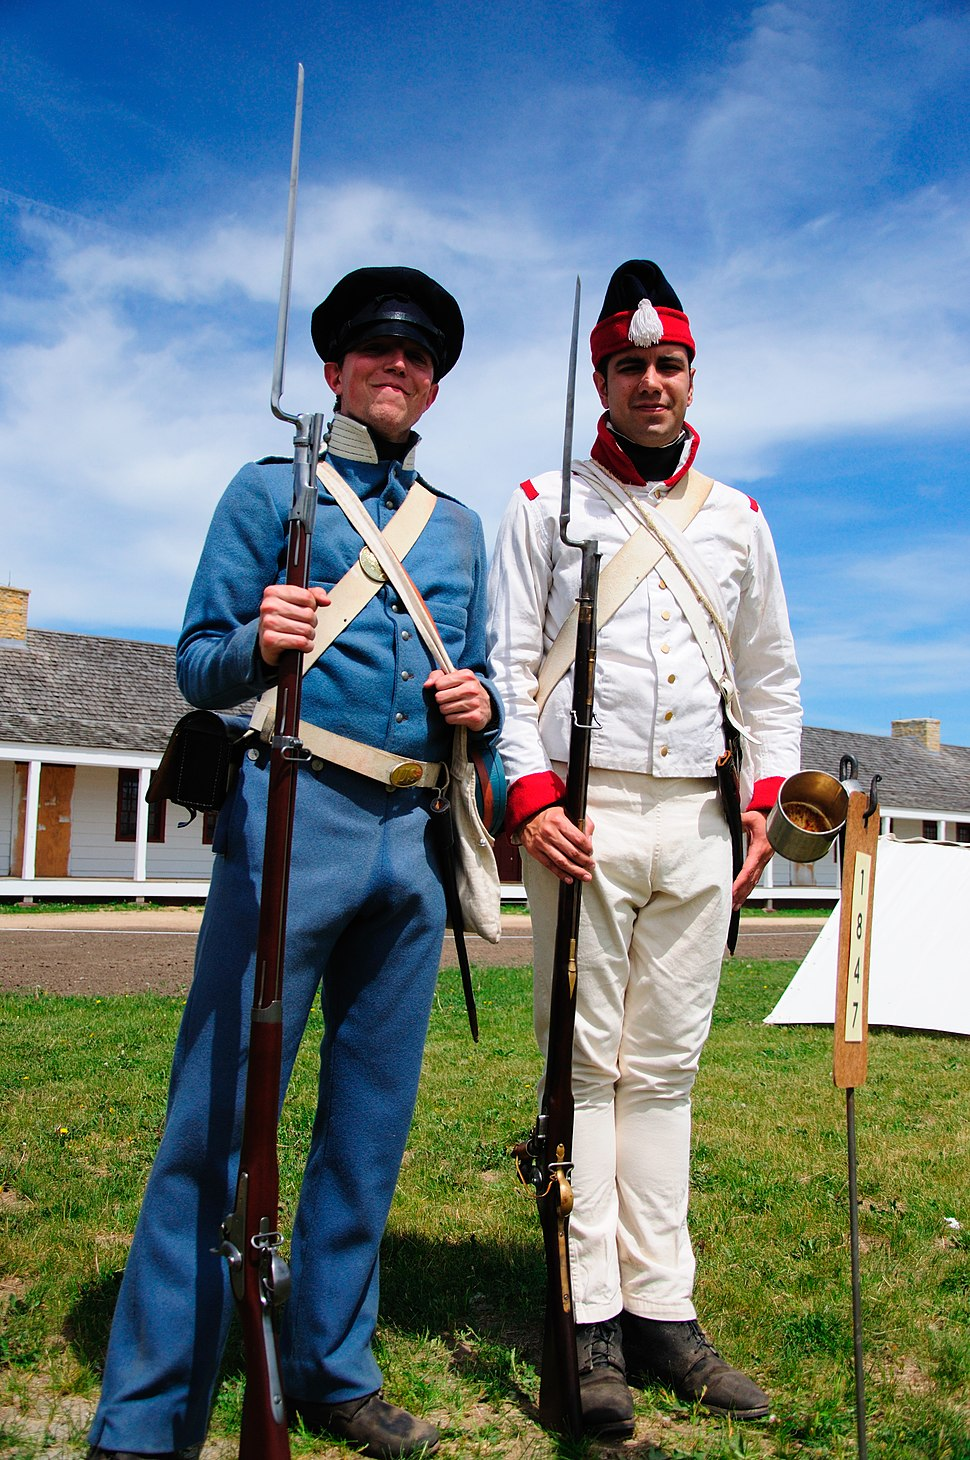 US and mexican soldiers 1846-1848